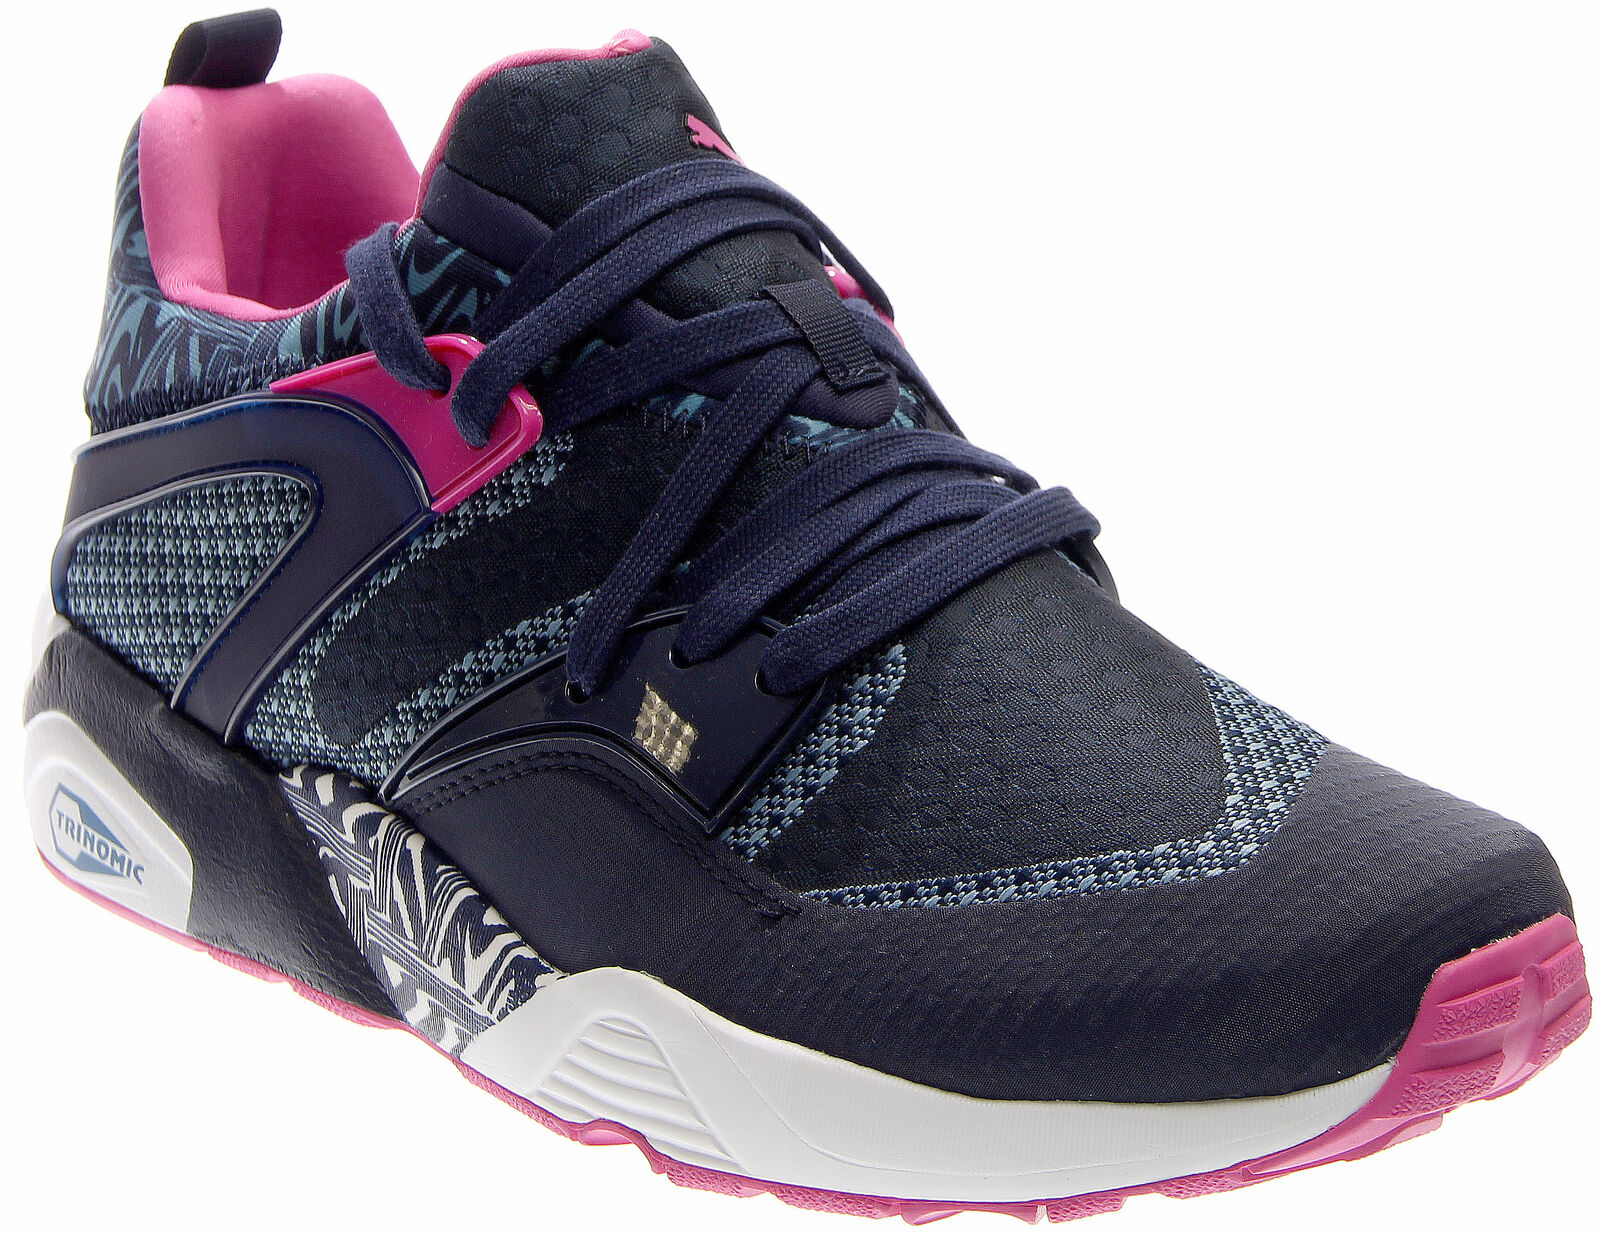 Puma Blaze Of Glory Woven  Casual Running  Shoes - Navy - Mens